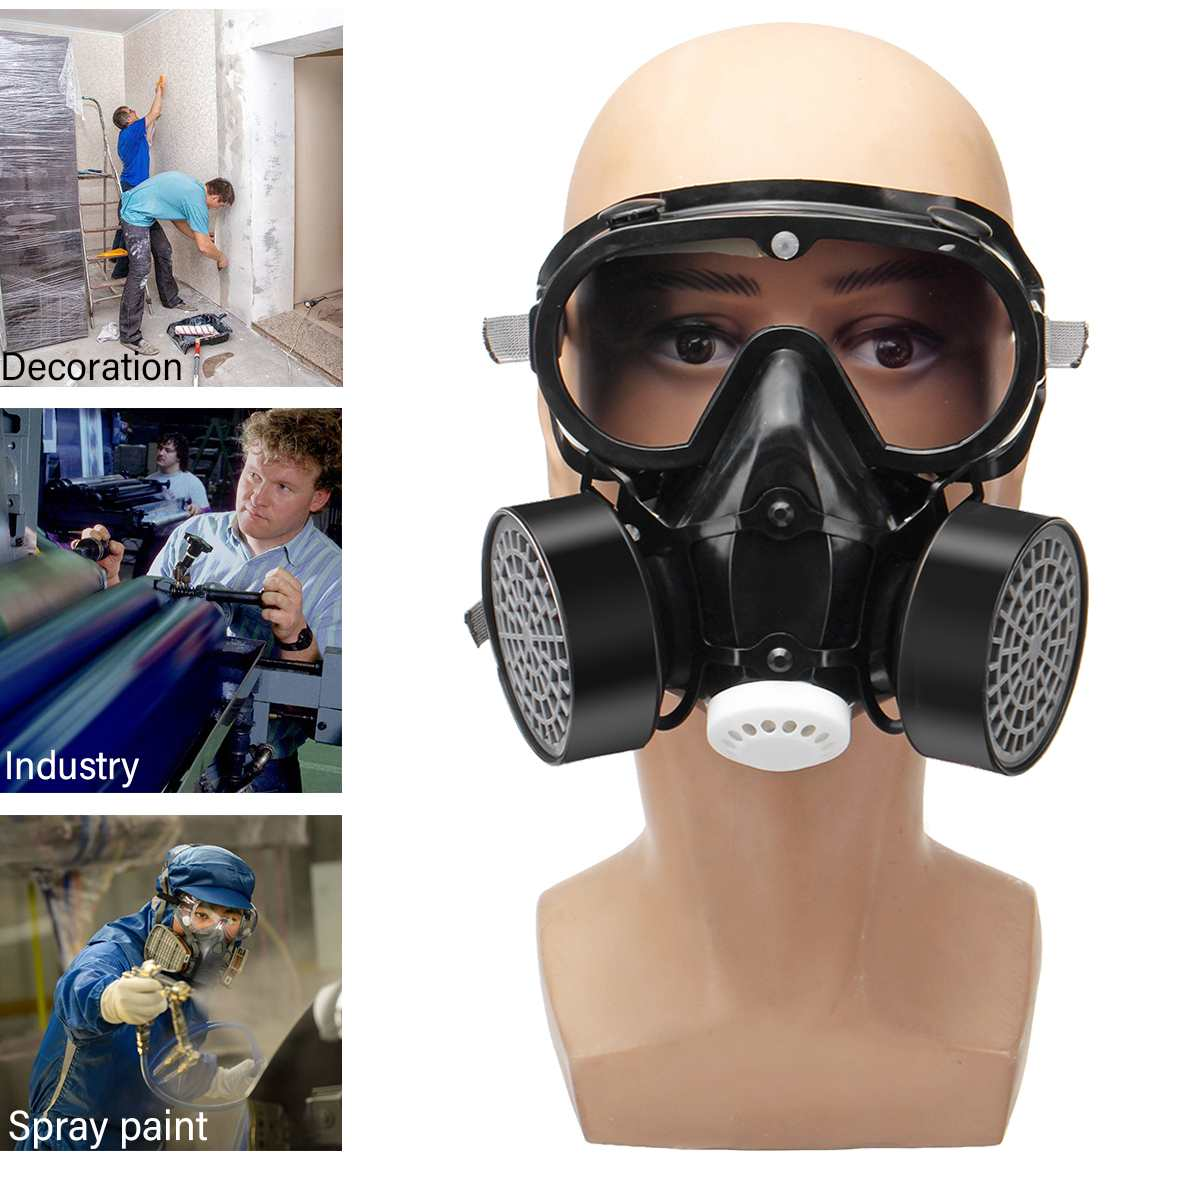 Respirator Half Face Mask Safe Chemical Anti-Dust Filter Military Eye Goggle Set Workplace Safety Protection For Painting Smoke